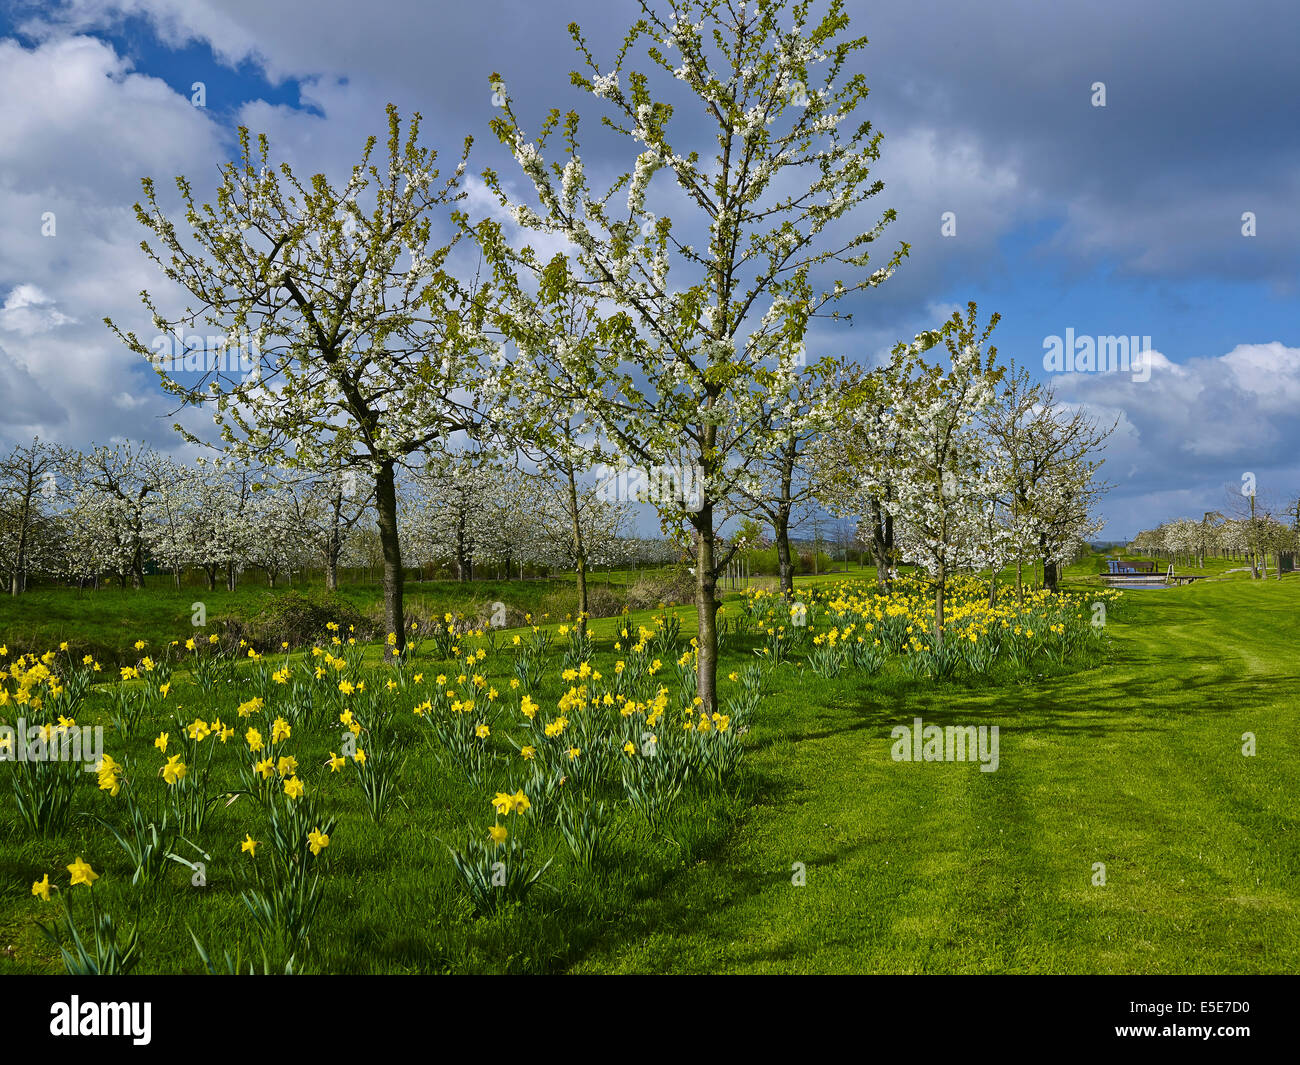 Orchard in Steinkirchen, Altes Land, Germany - Stock Image